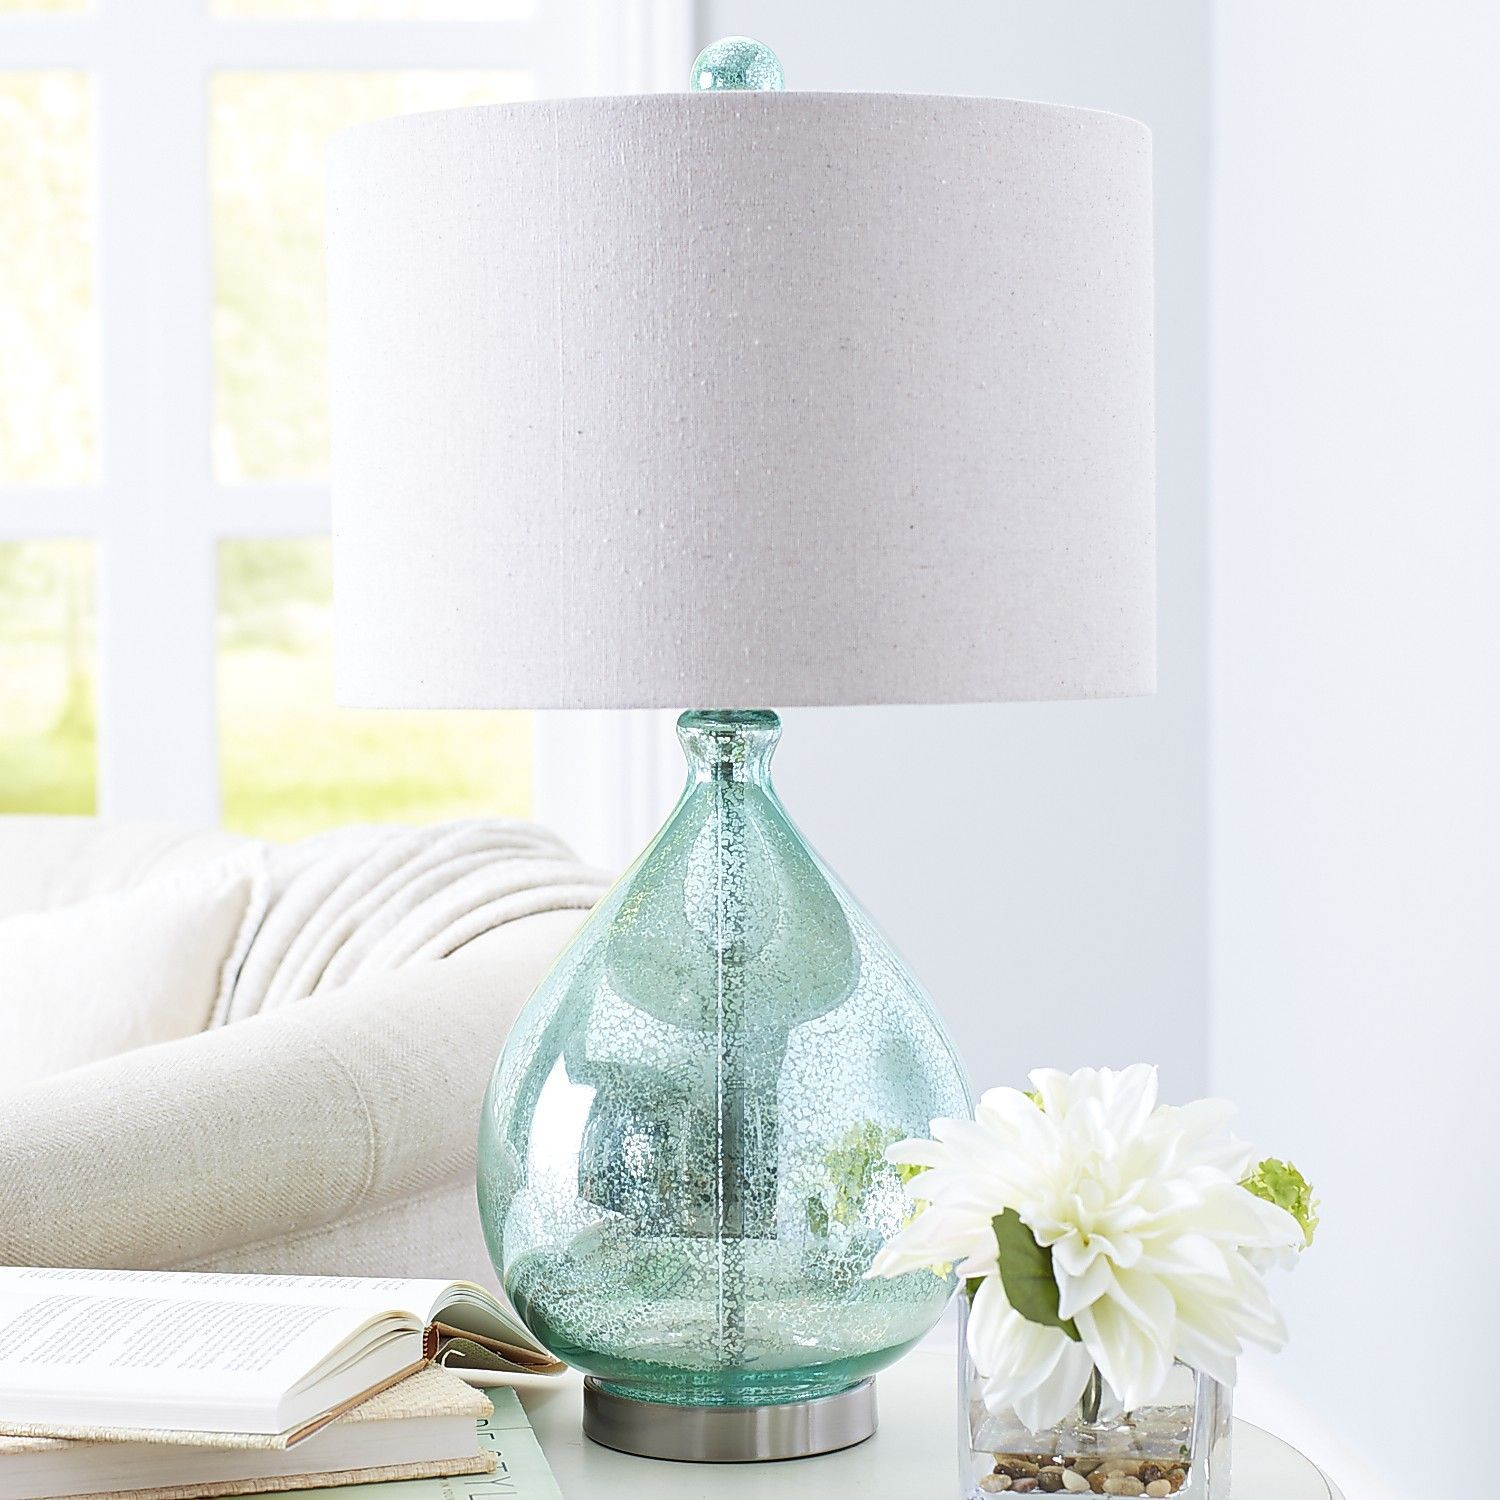 Casa cortes lush mosaic art glass 25 inch table lamps set of 2 - Teal Teardrop Luxe Lamp